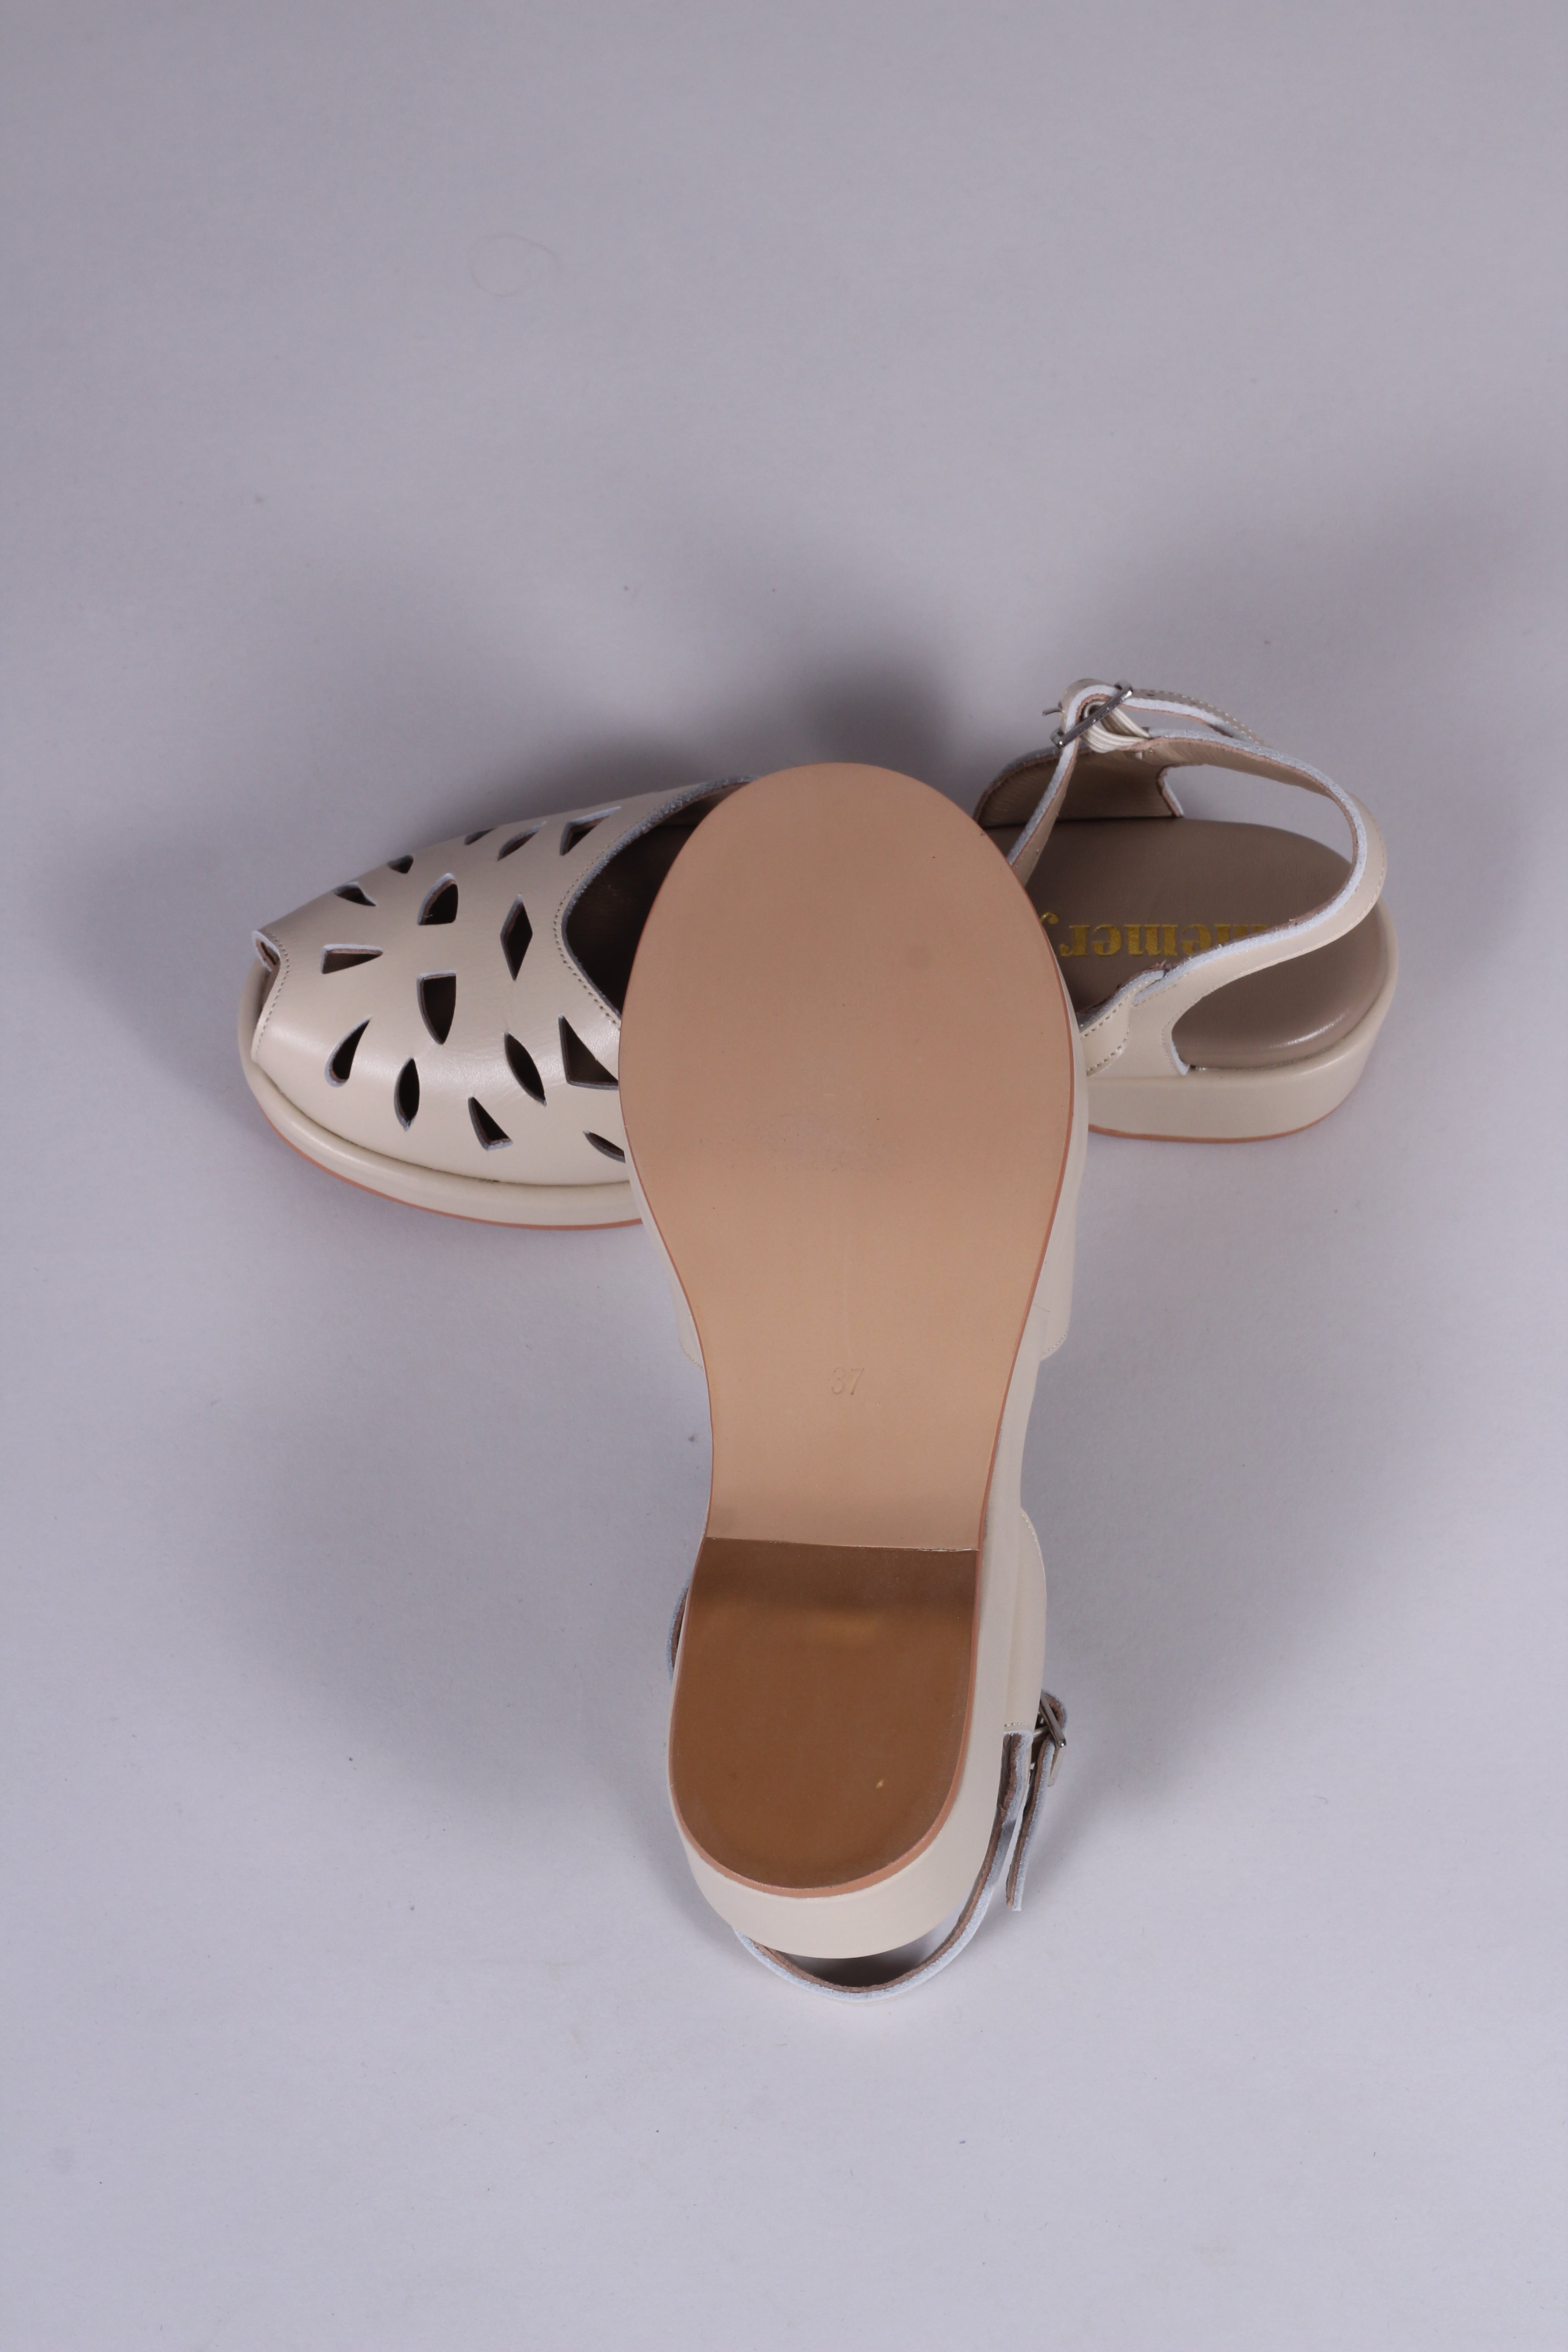 1940s / 50s style summer sandals /  wedges - Off white - Sidse